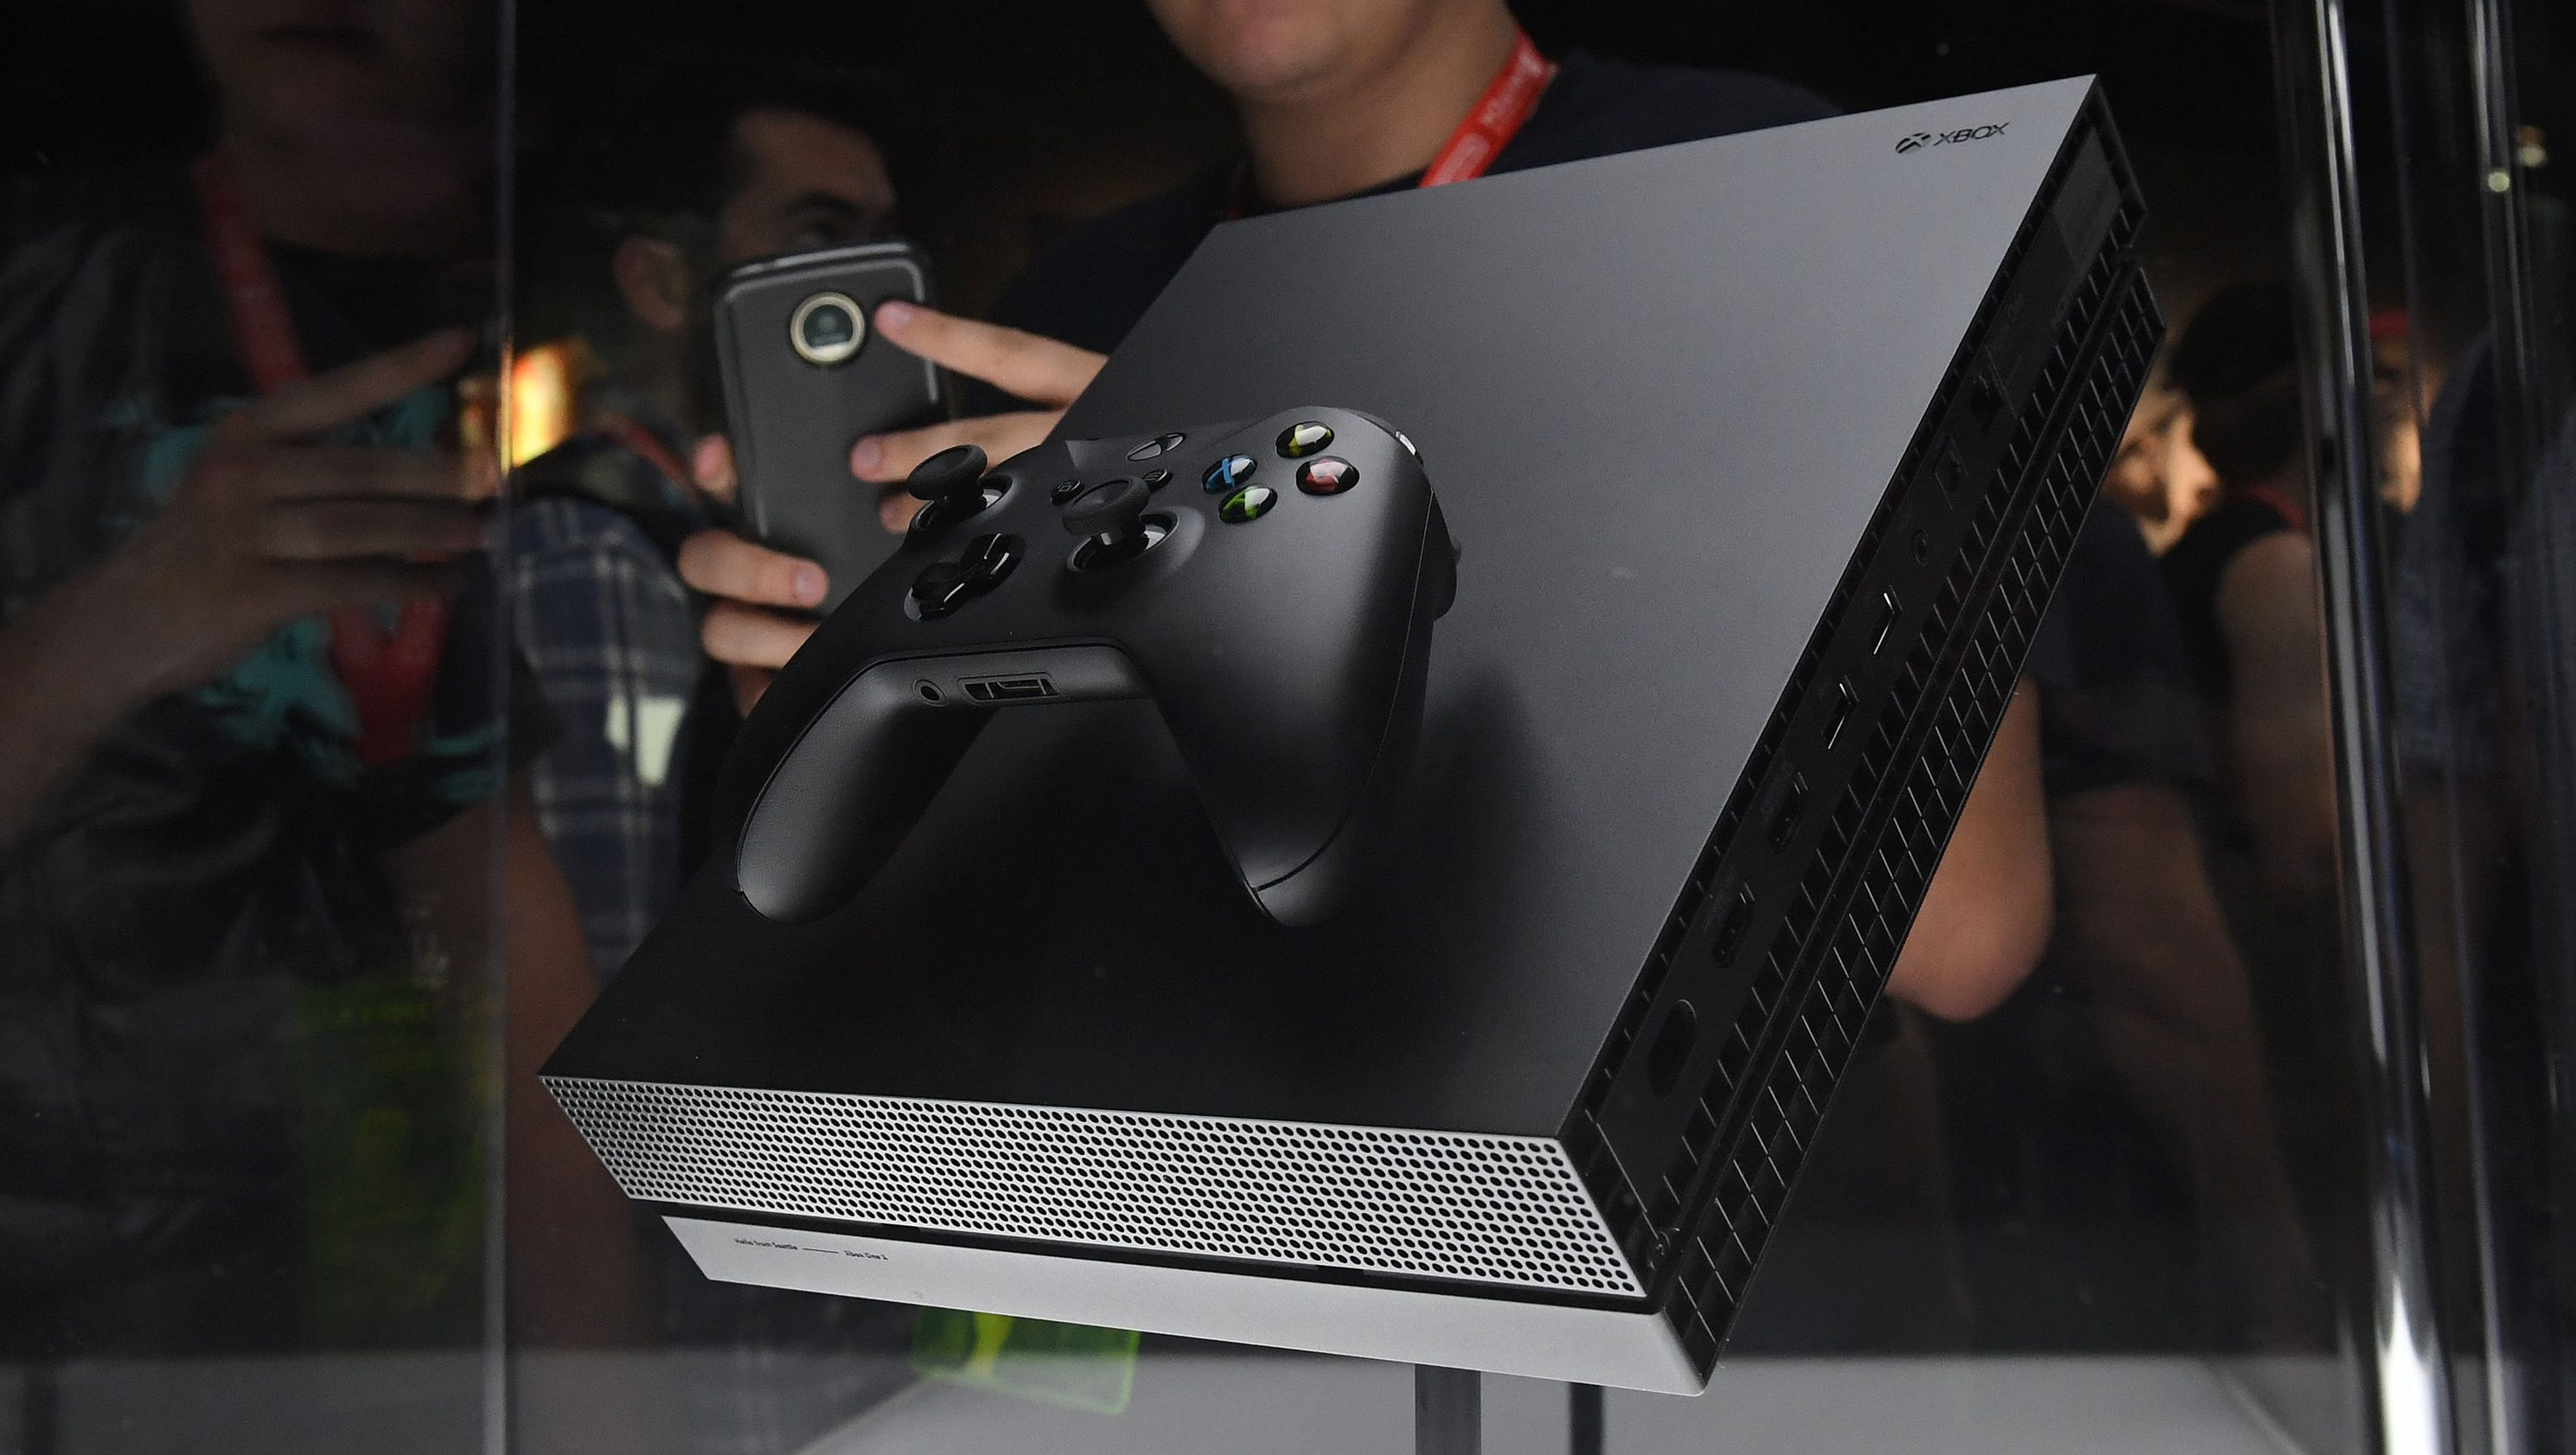 xbox one x worth the 499 if you plan to buy 4k tv